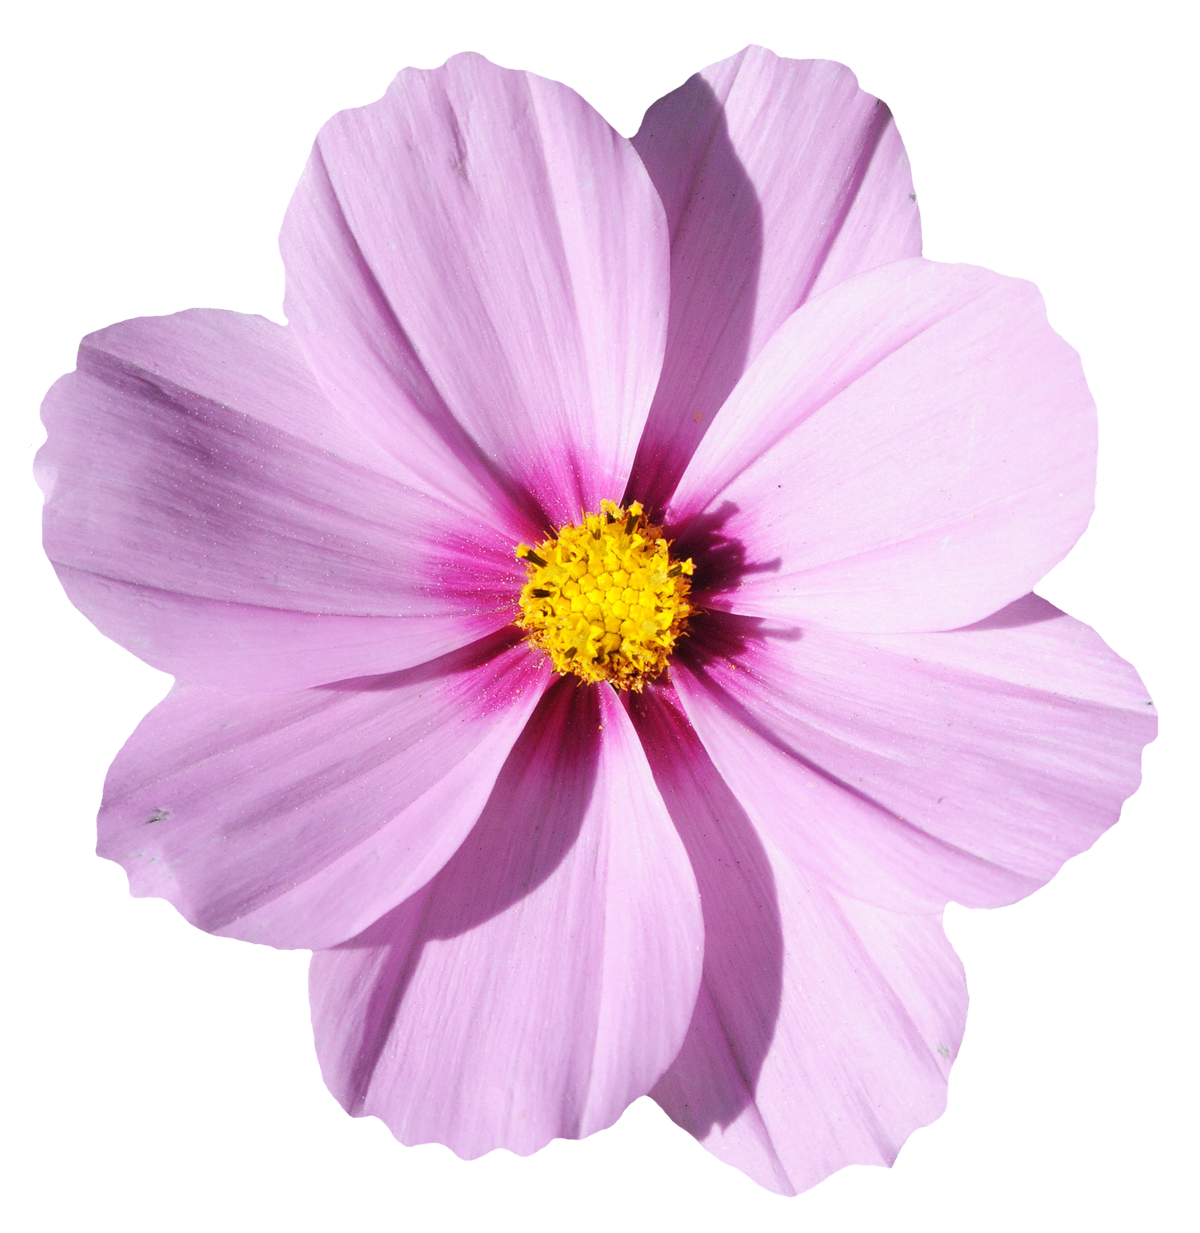 Purple Flower Clipart No Background: Blossom Flower PNG Image - PurePNG